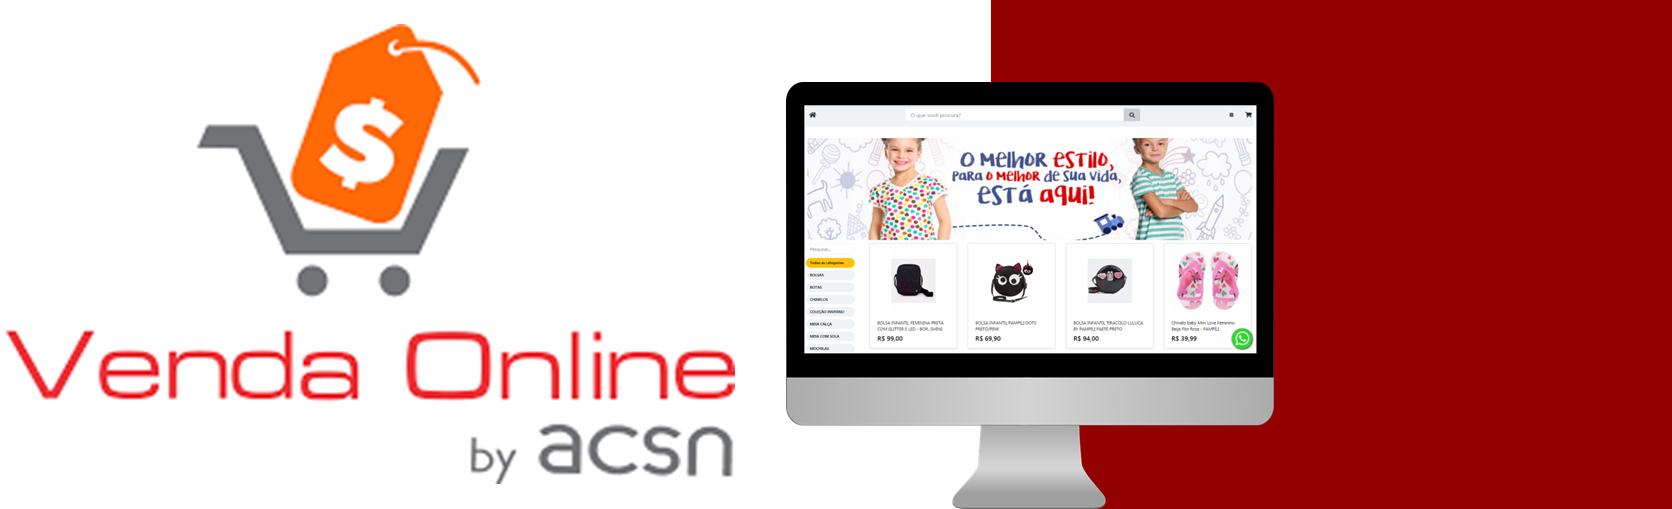 venda online vitrine virtual